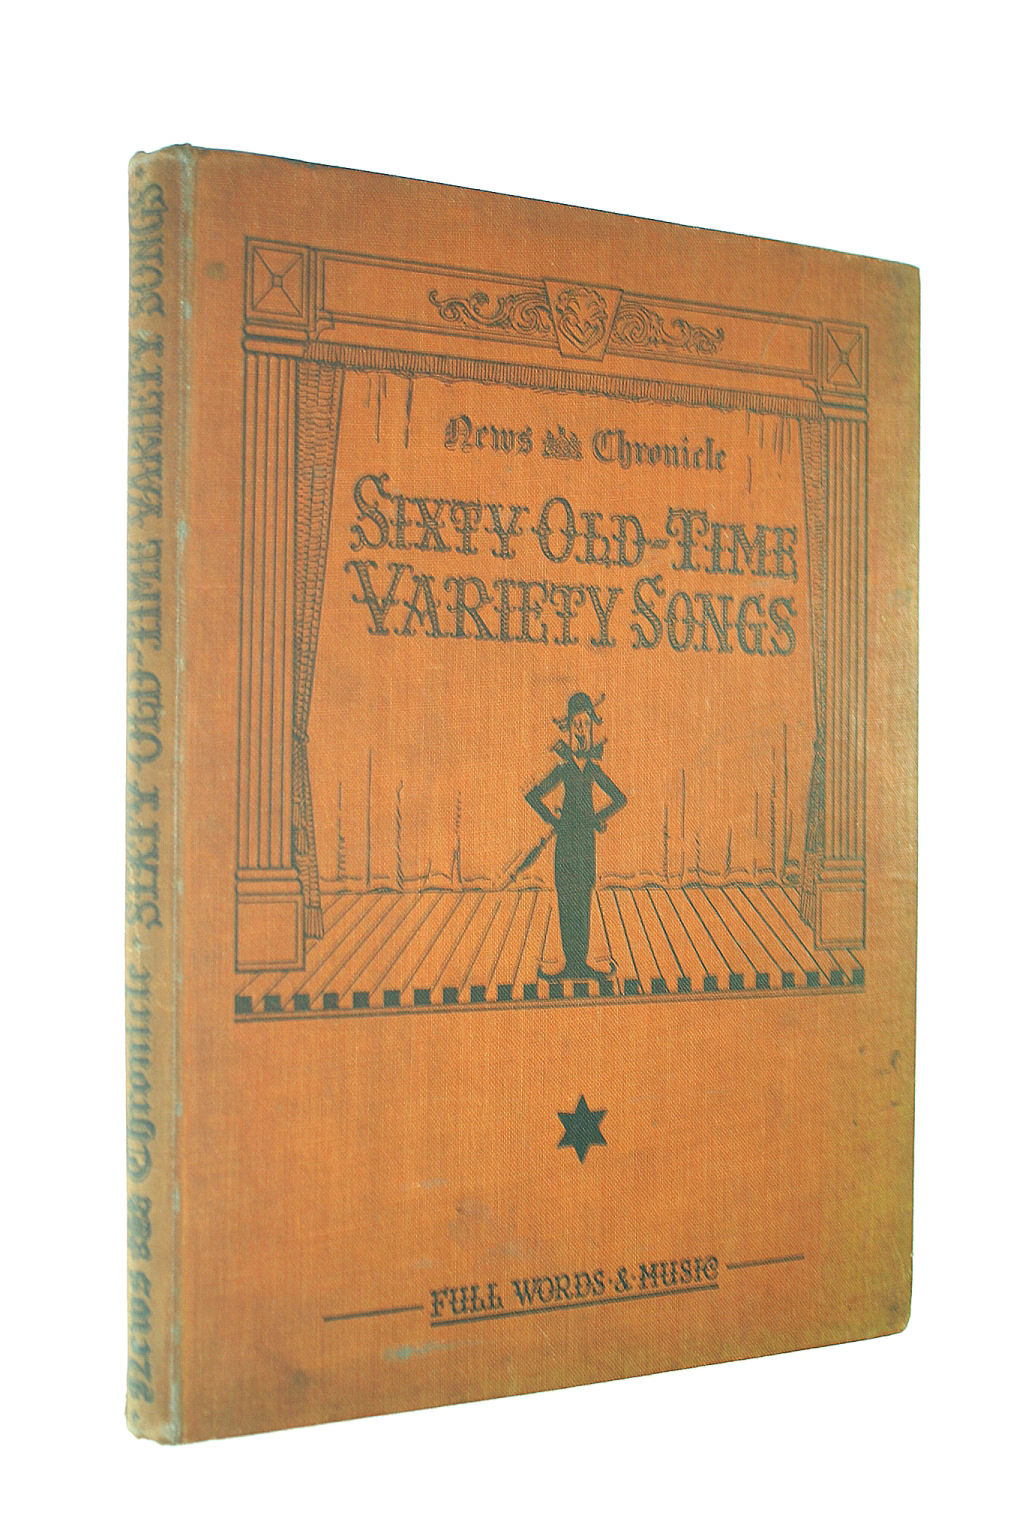 Image for News Chronicle Song Book No. 2. Sixty Old-Time Variety Songs. With An Introduction By Charles Coborn And An Appreciation By George Robey